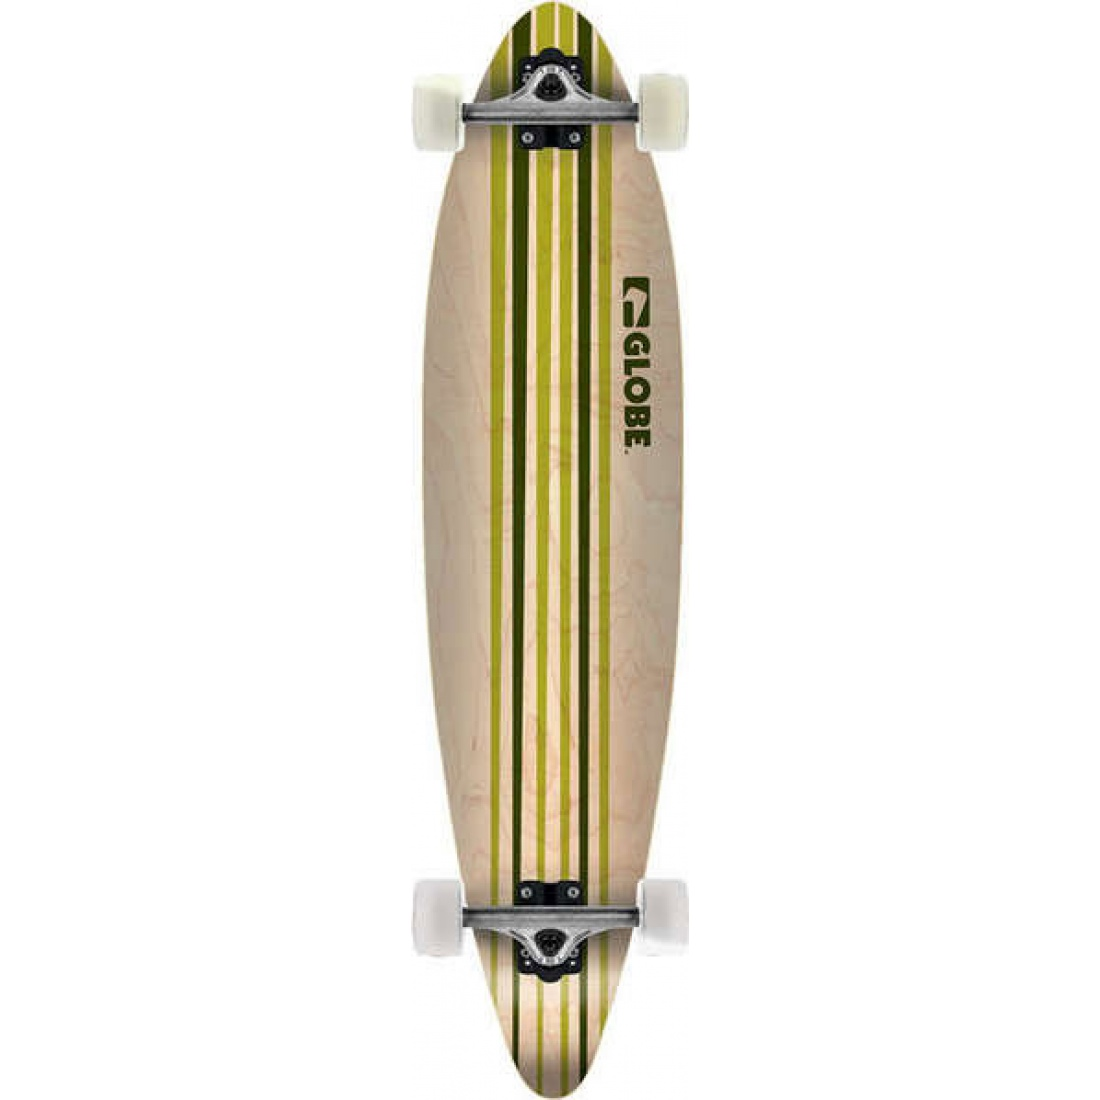 GLB-Pinner Green/White 41 Longboard